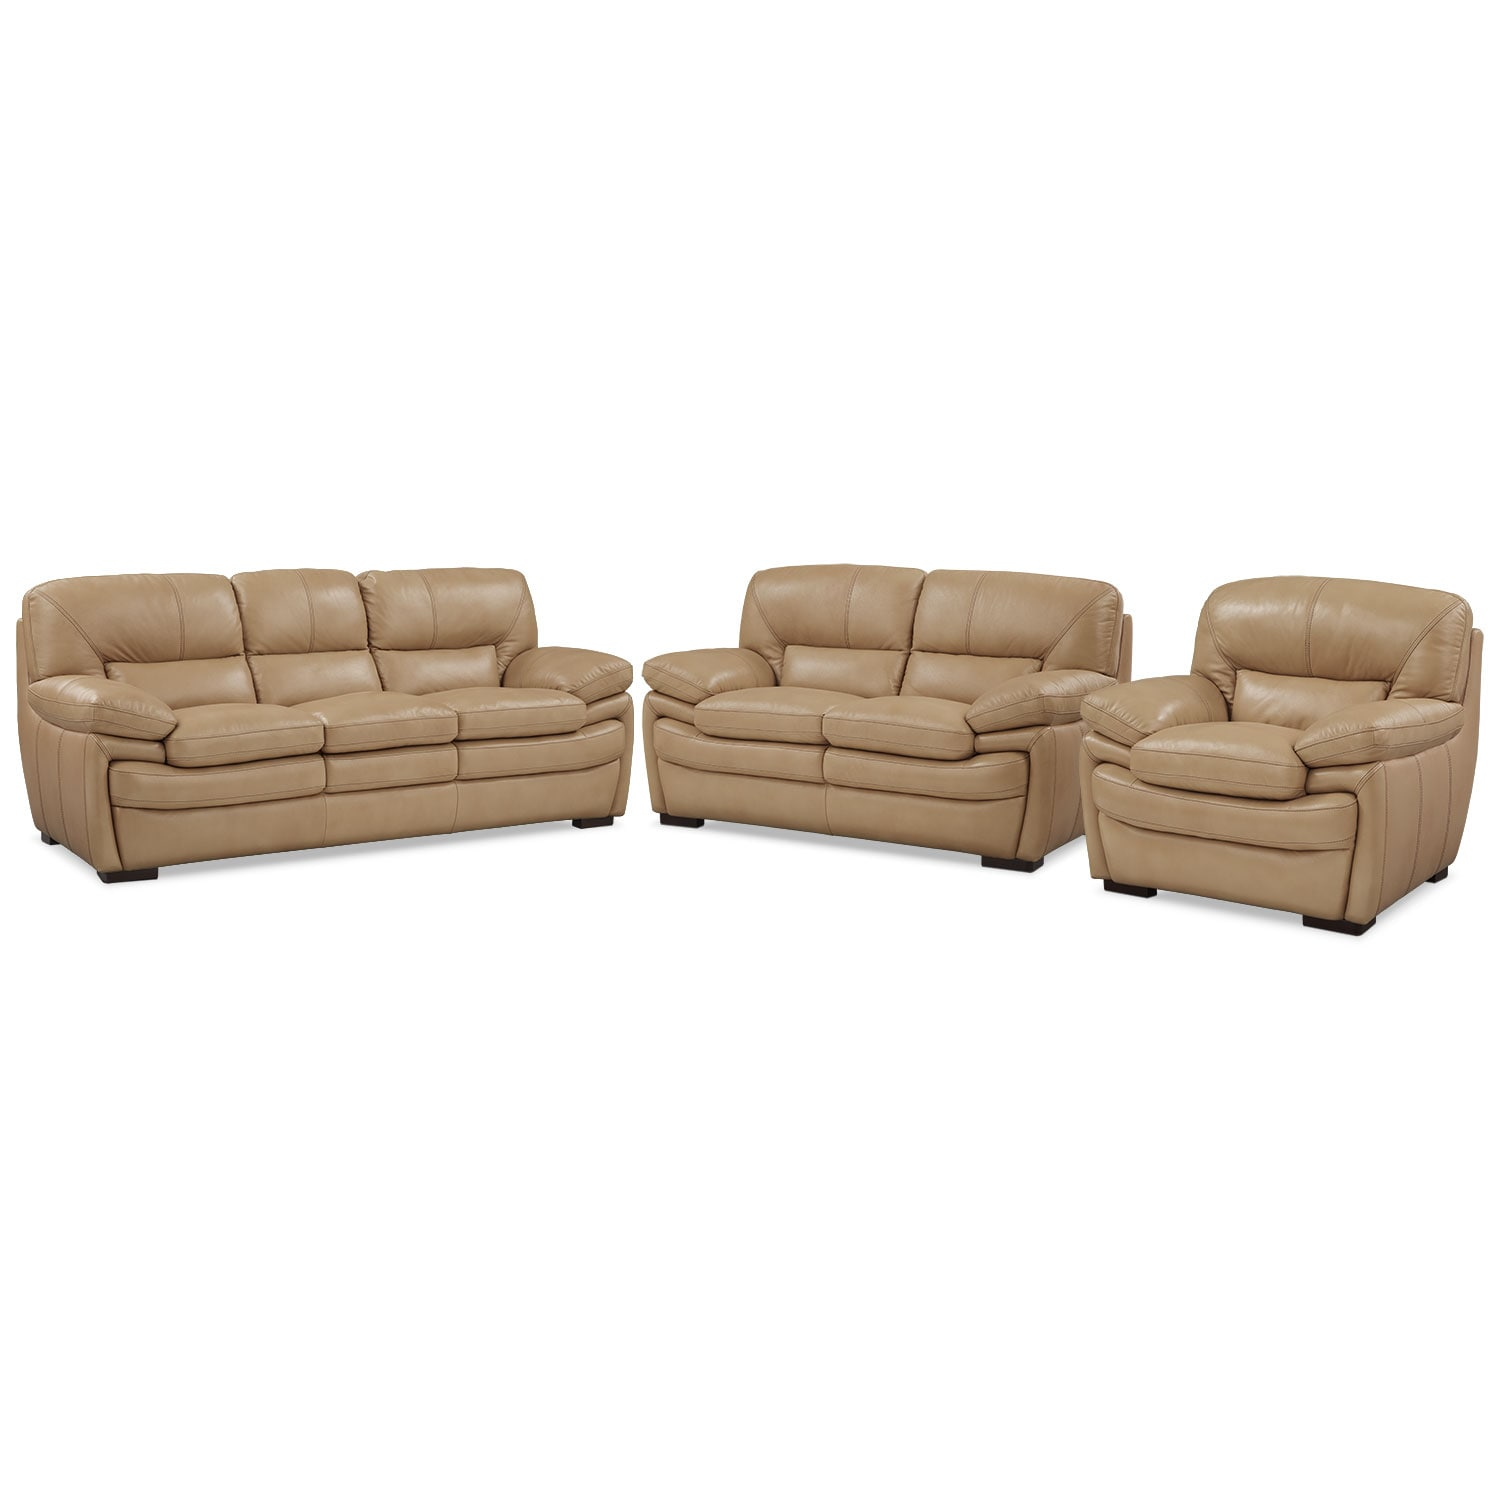 Living Room Furniture - Peyton Taupe 3 Pc. Living Room